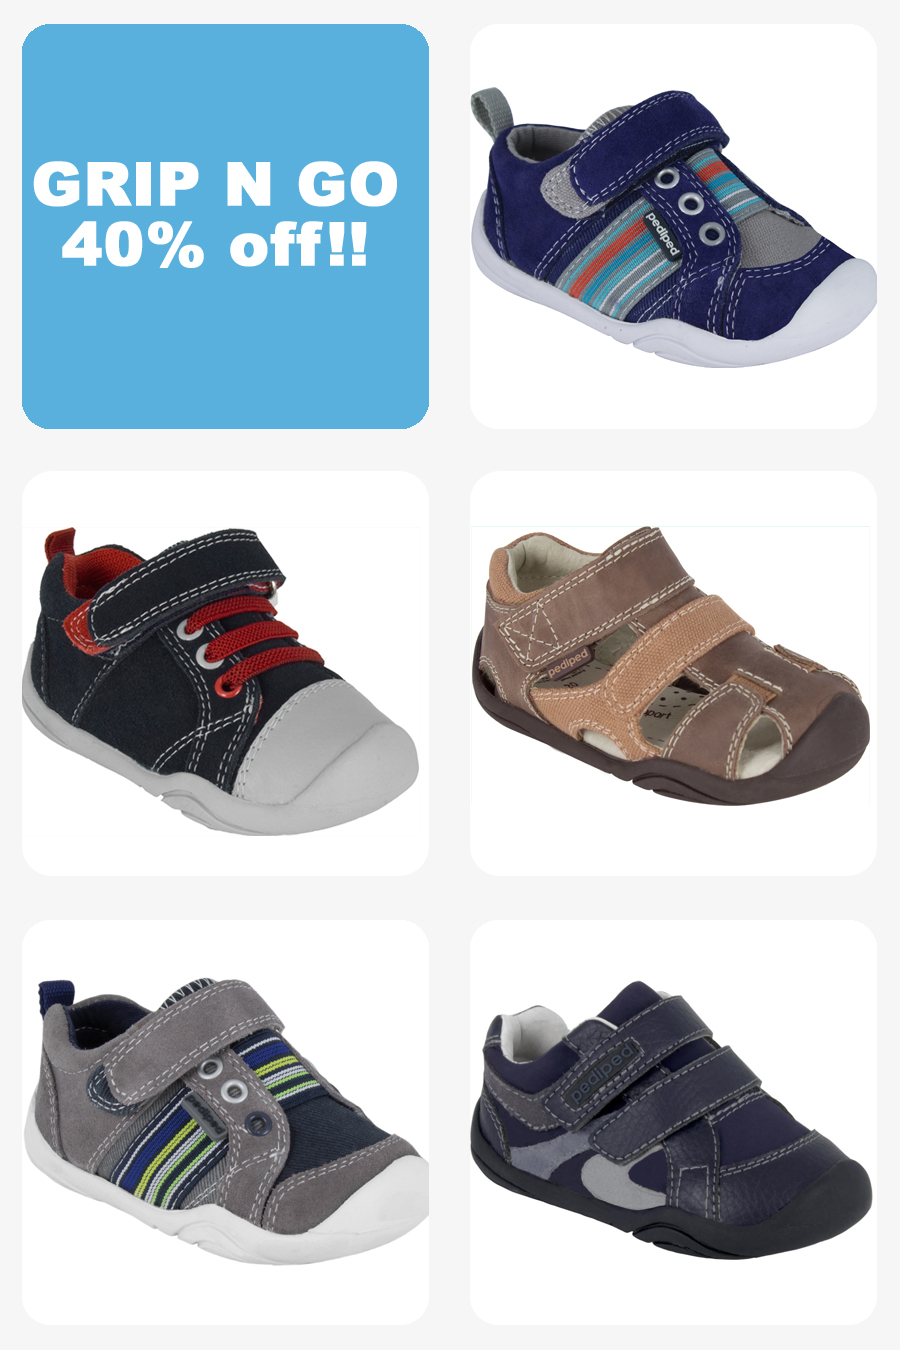 Sign up for new styles from pediped